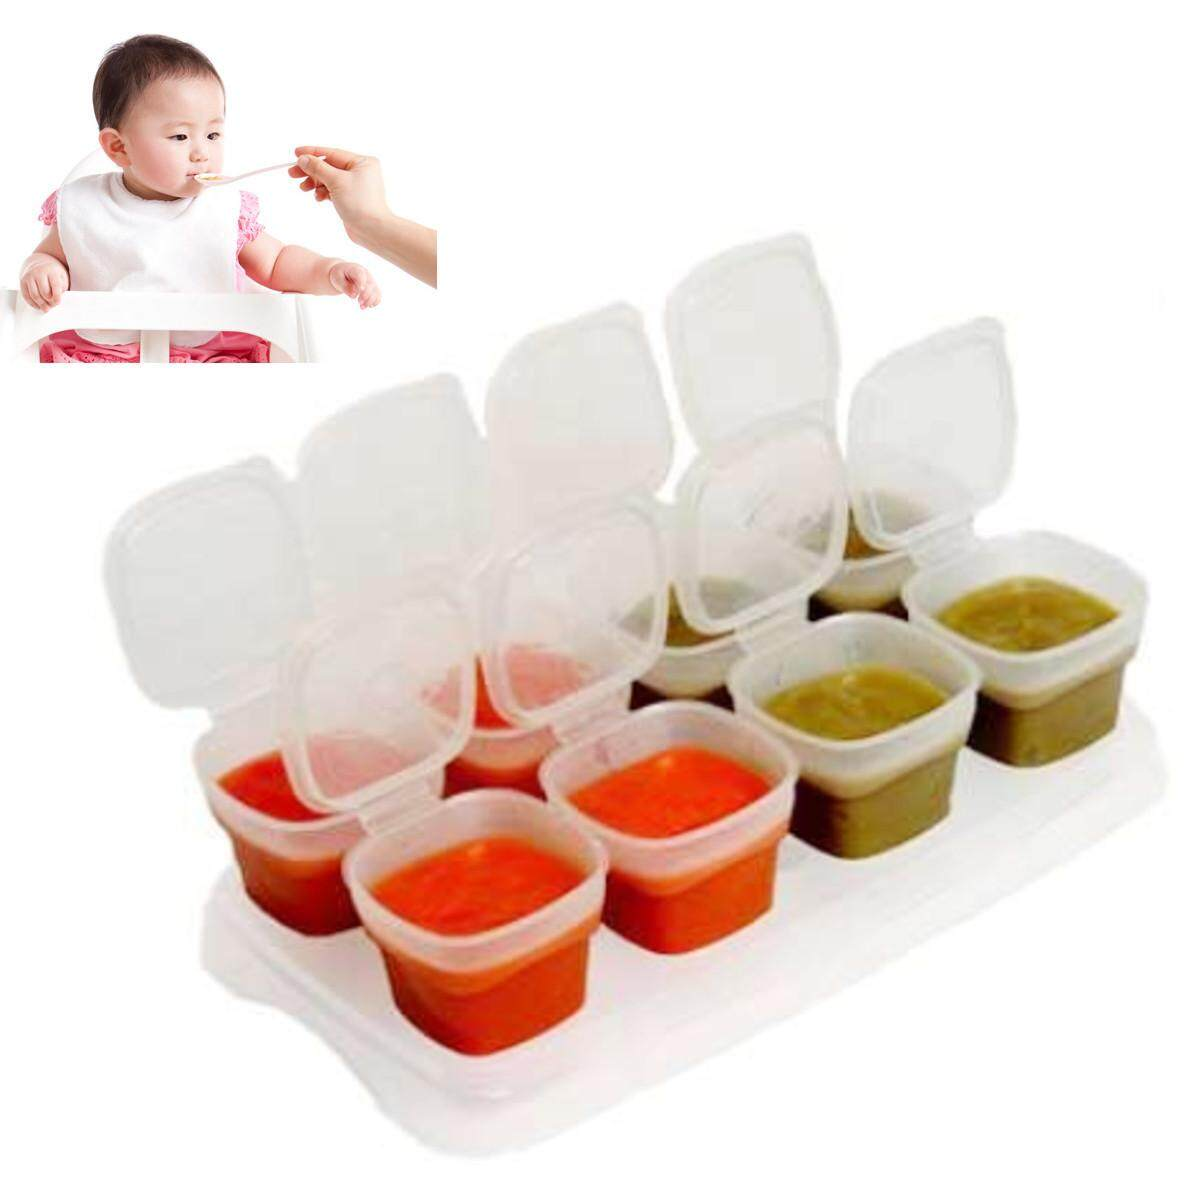 8pcs Baby Weaning Food Freezing Cubes Tray Pots Storage Containers Box Bpa Free By Moonbeam.